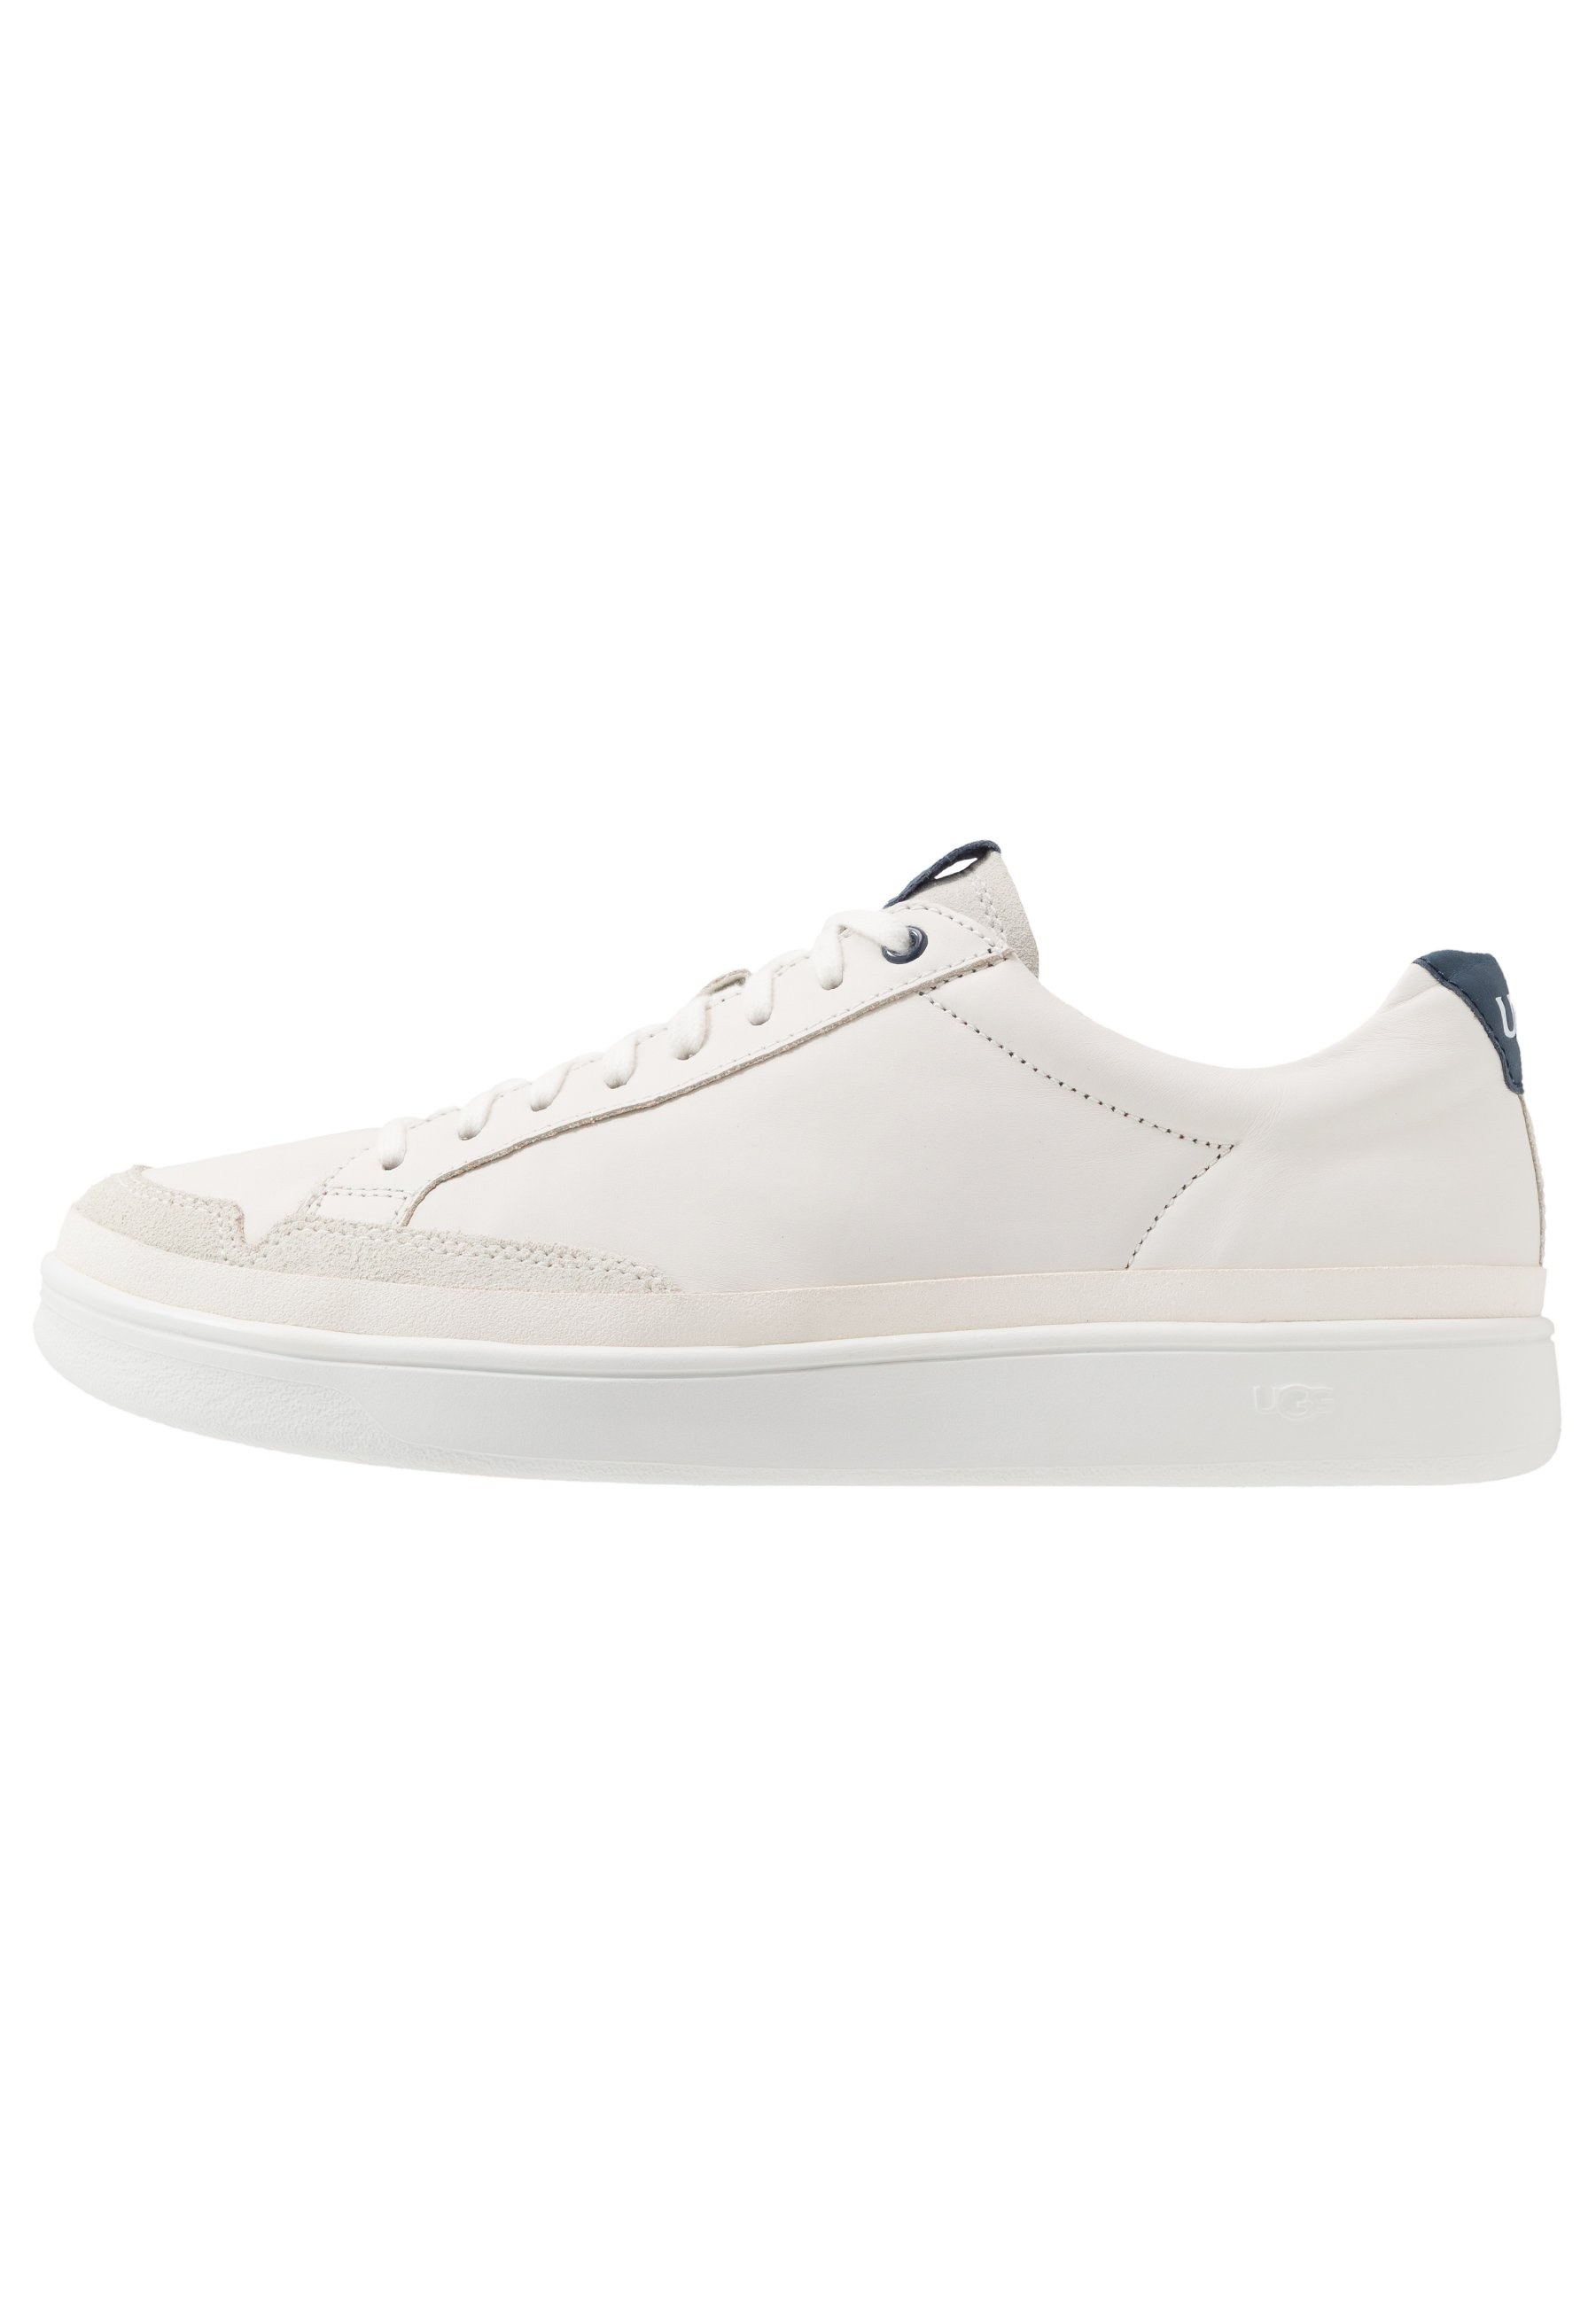 SOUTH BAY Sneakers white